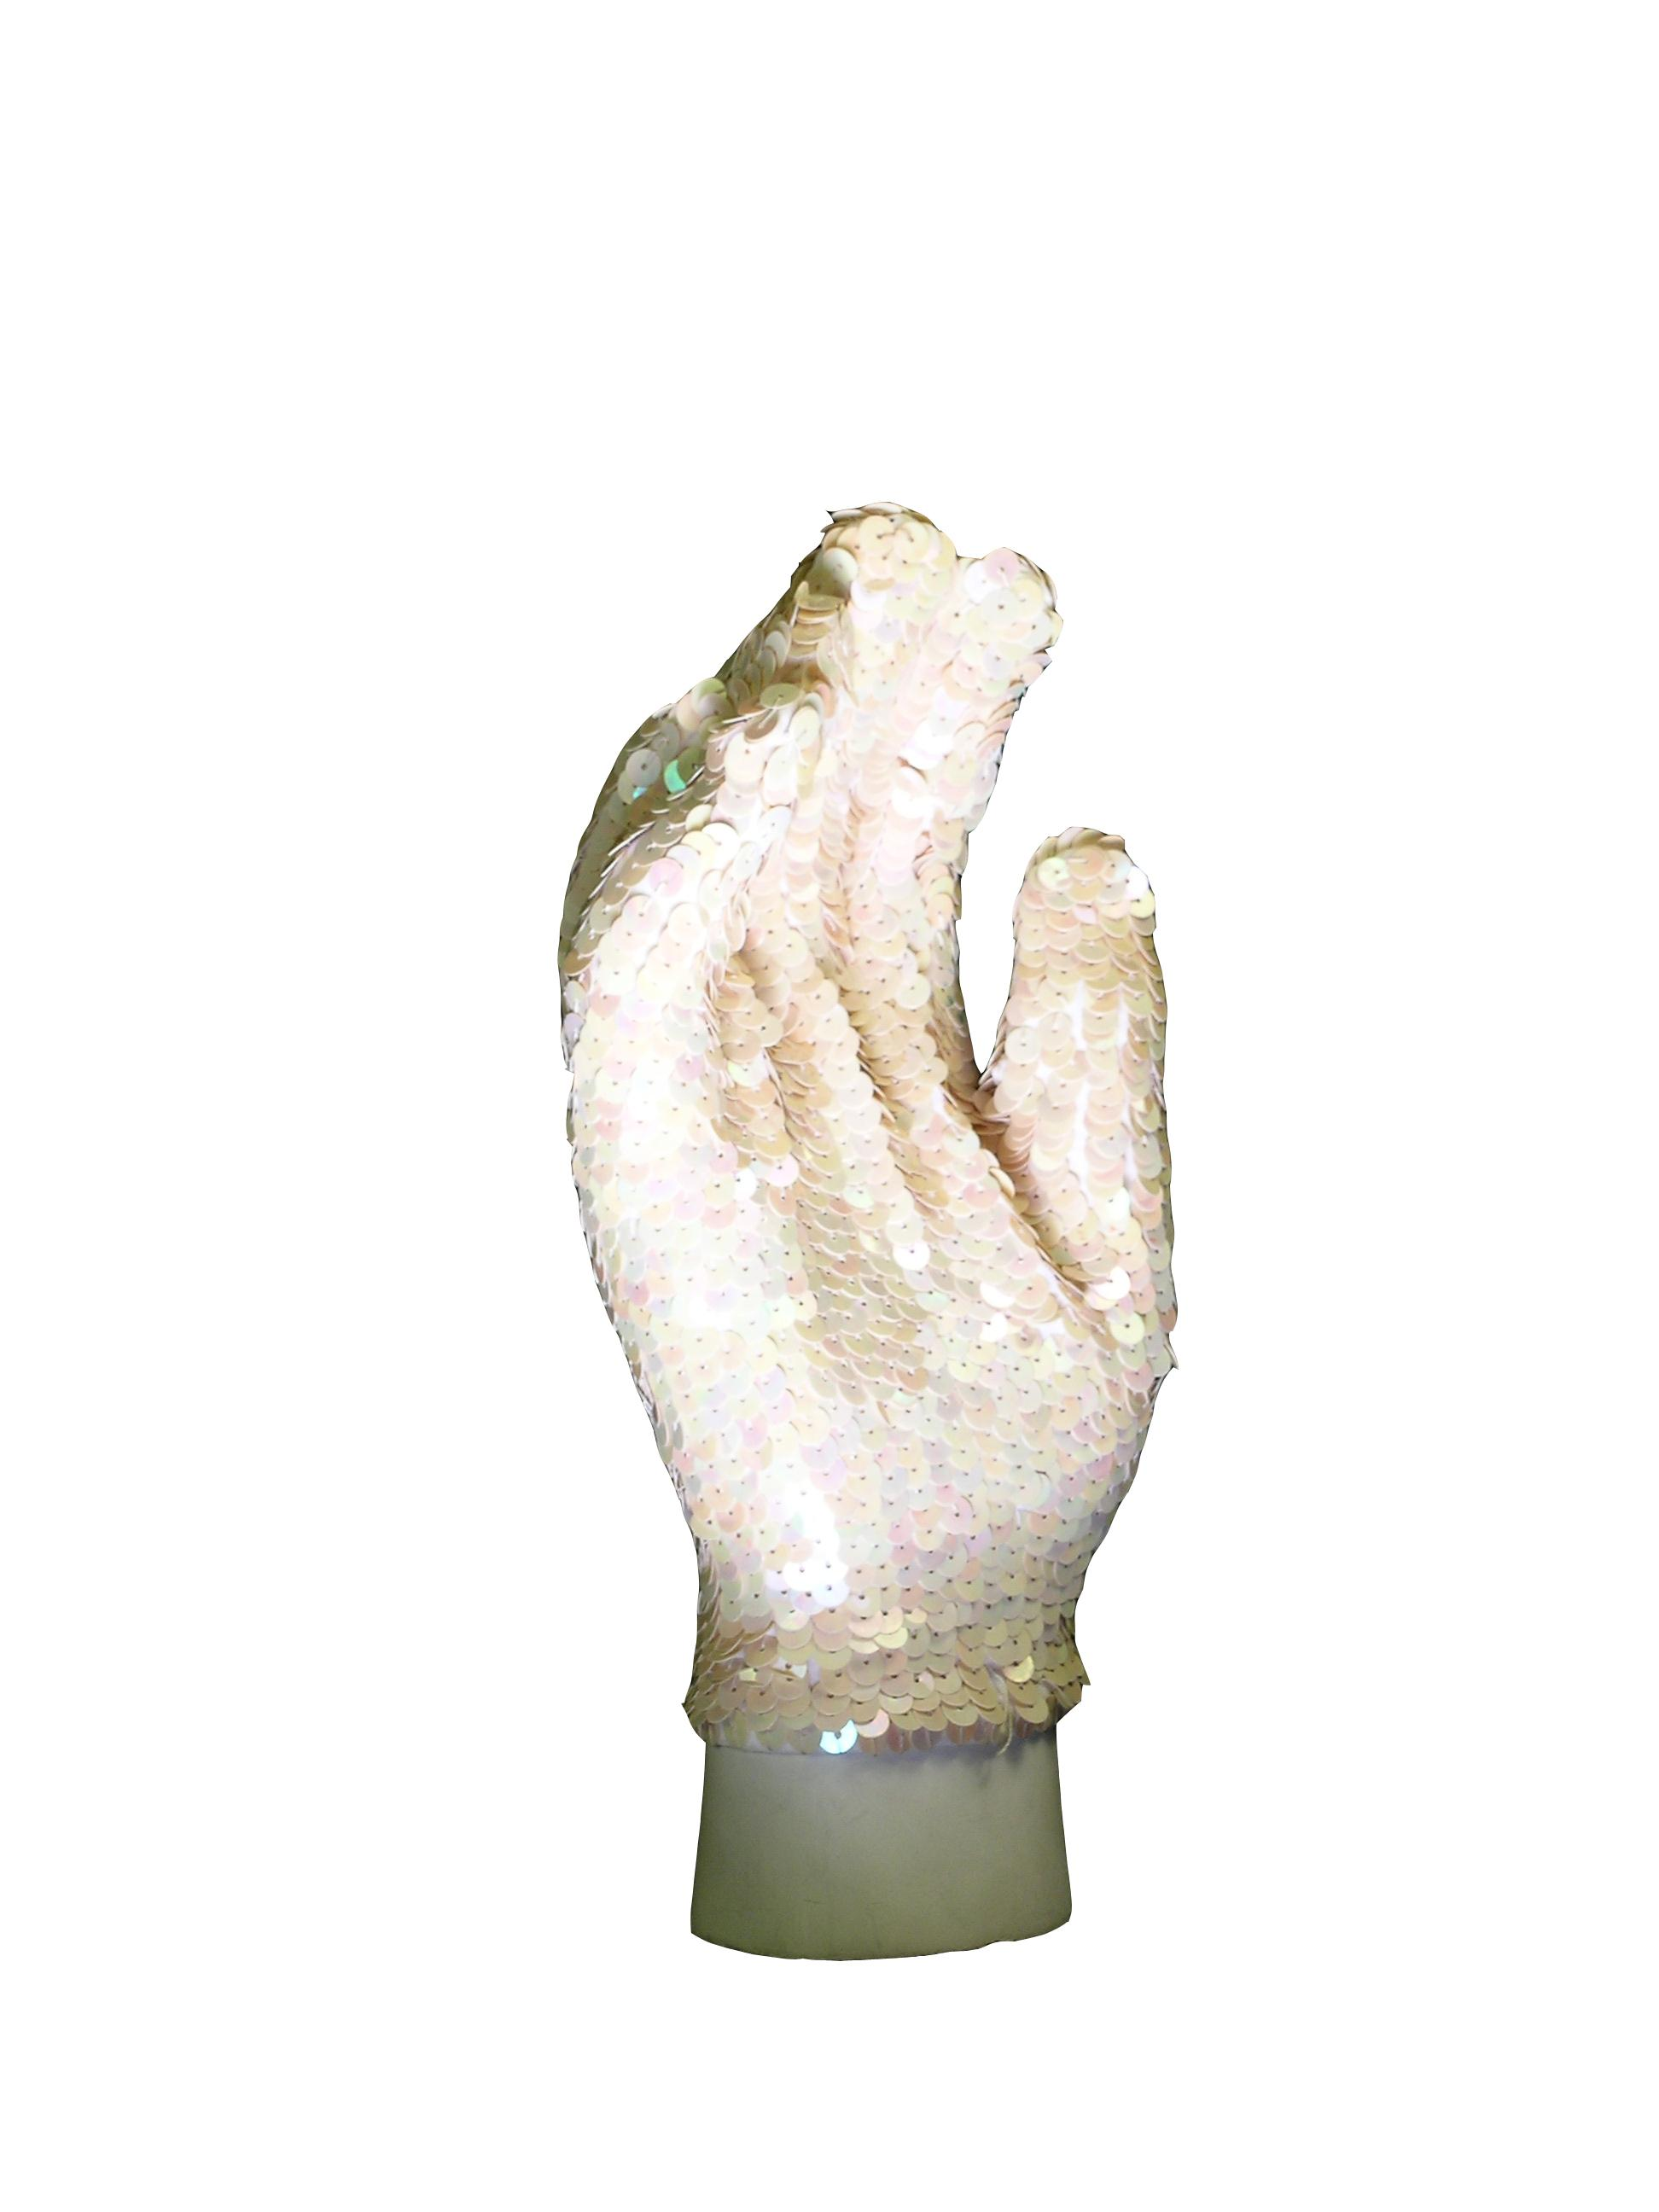 What would you pay for Michael Jacksons sequined glove